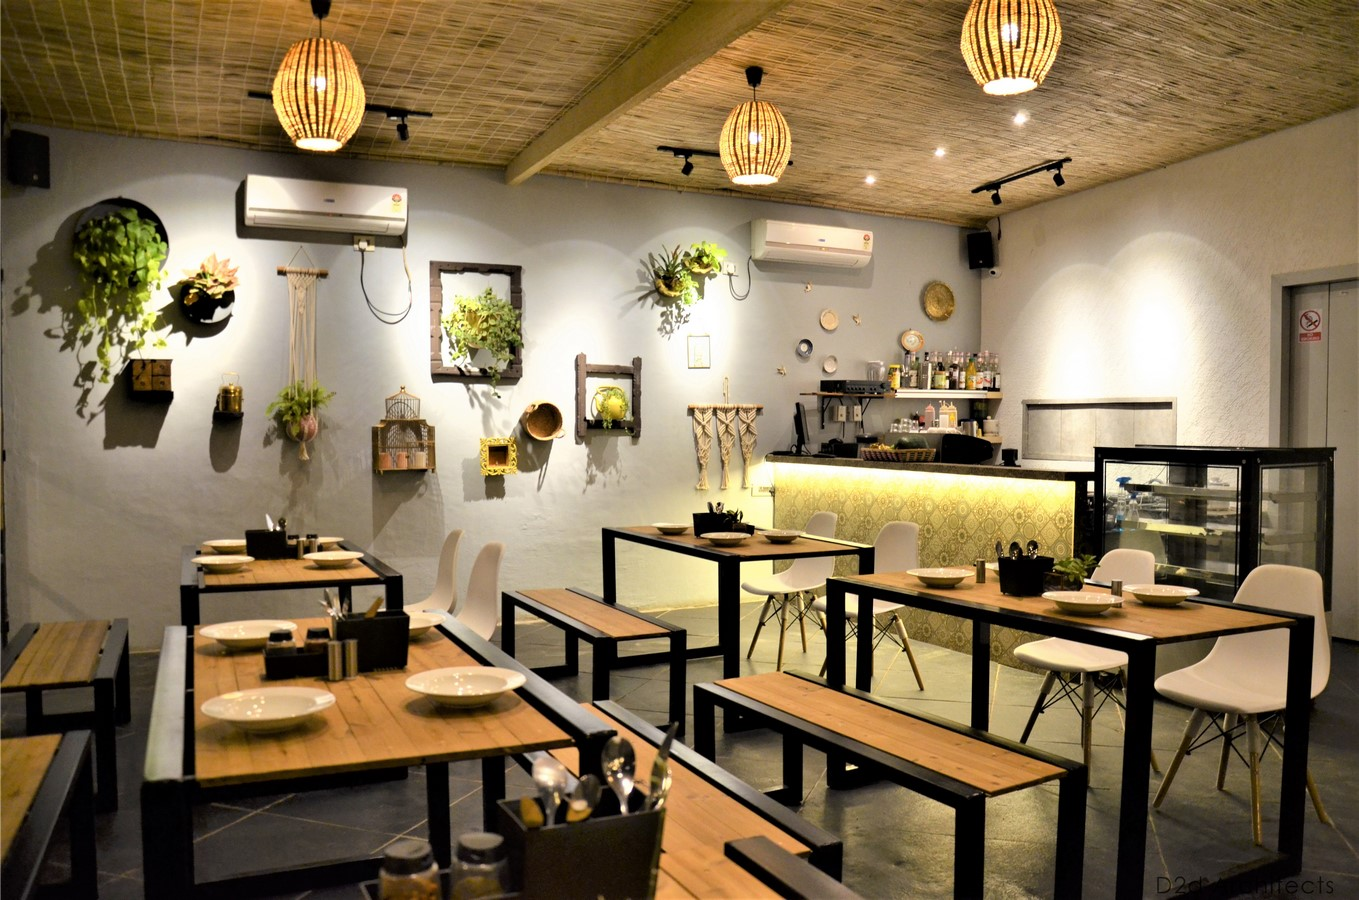 Hush cafe by D2d Architects - Sheet3